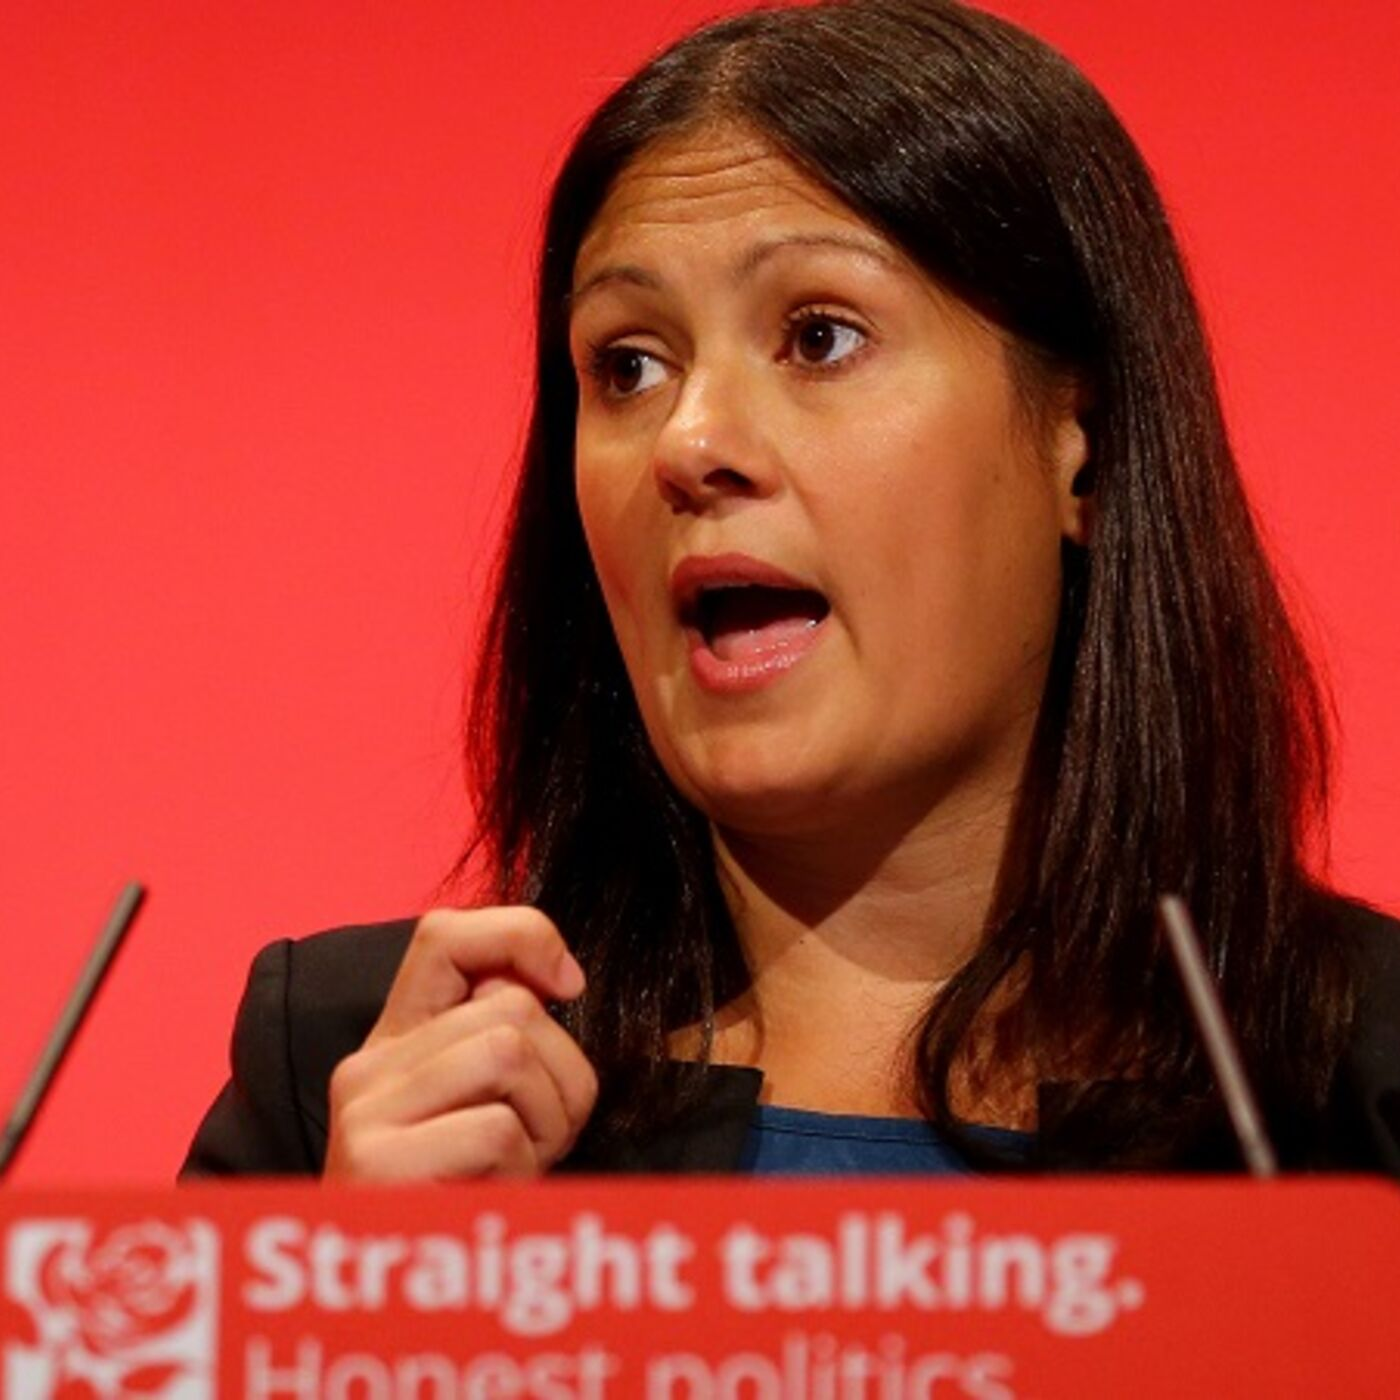 22. Lisa Nandy on post-Brexit Britain, post-Corbyn Labour, and saving Wigan Athletic